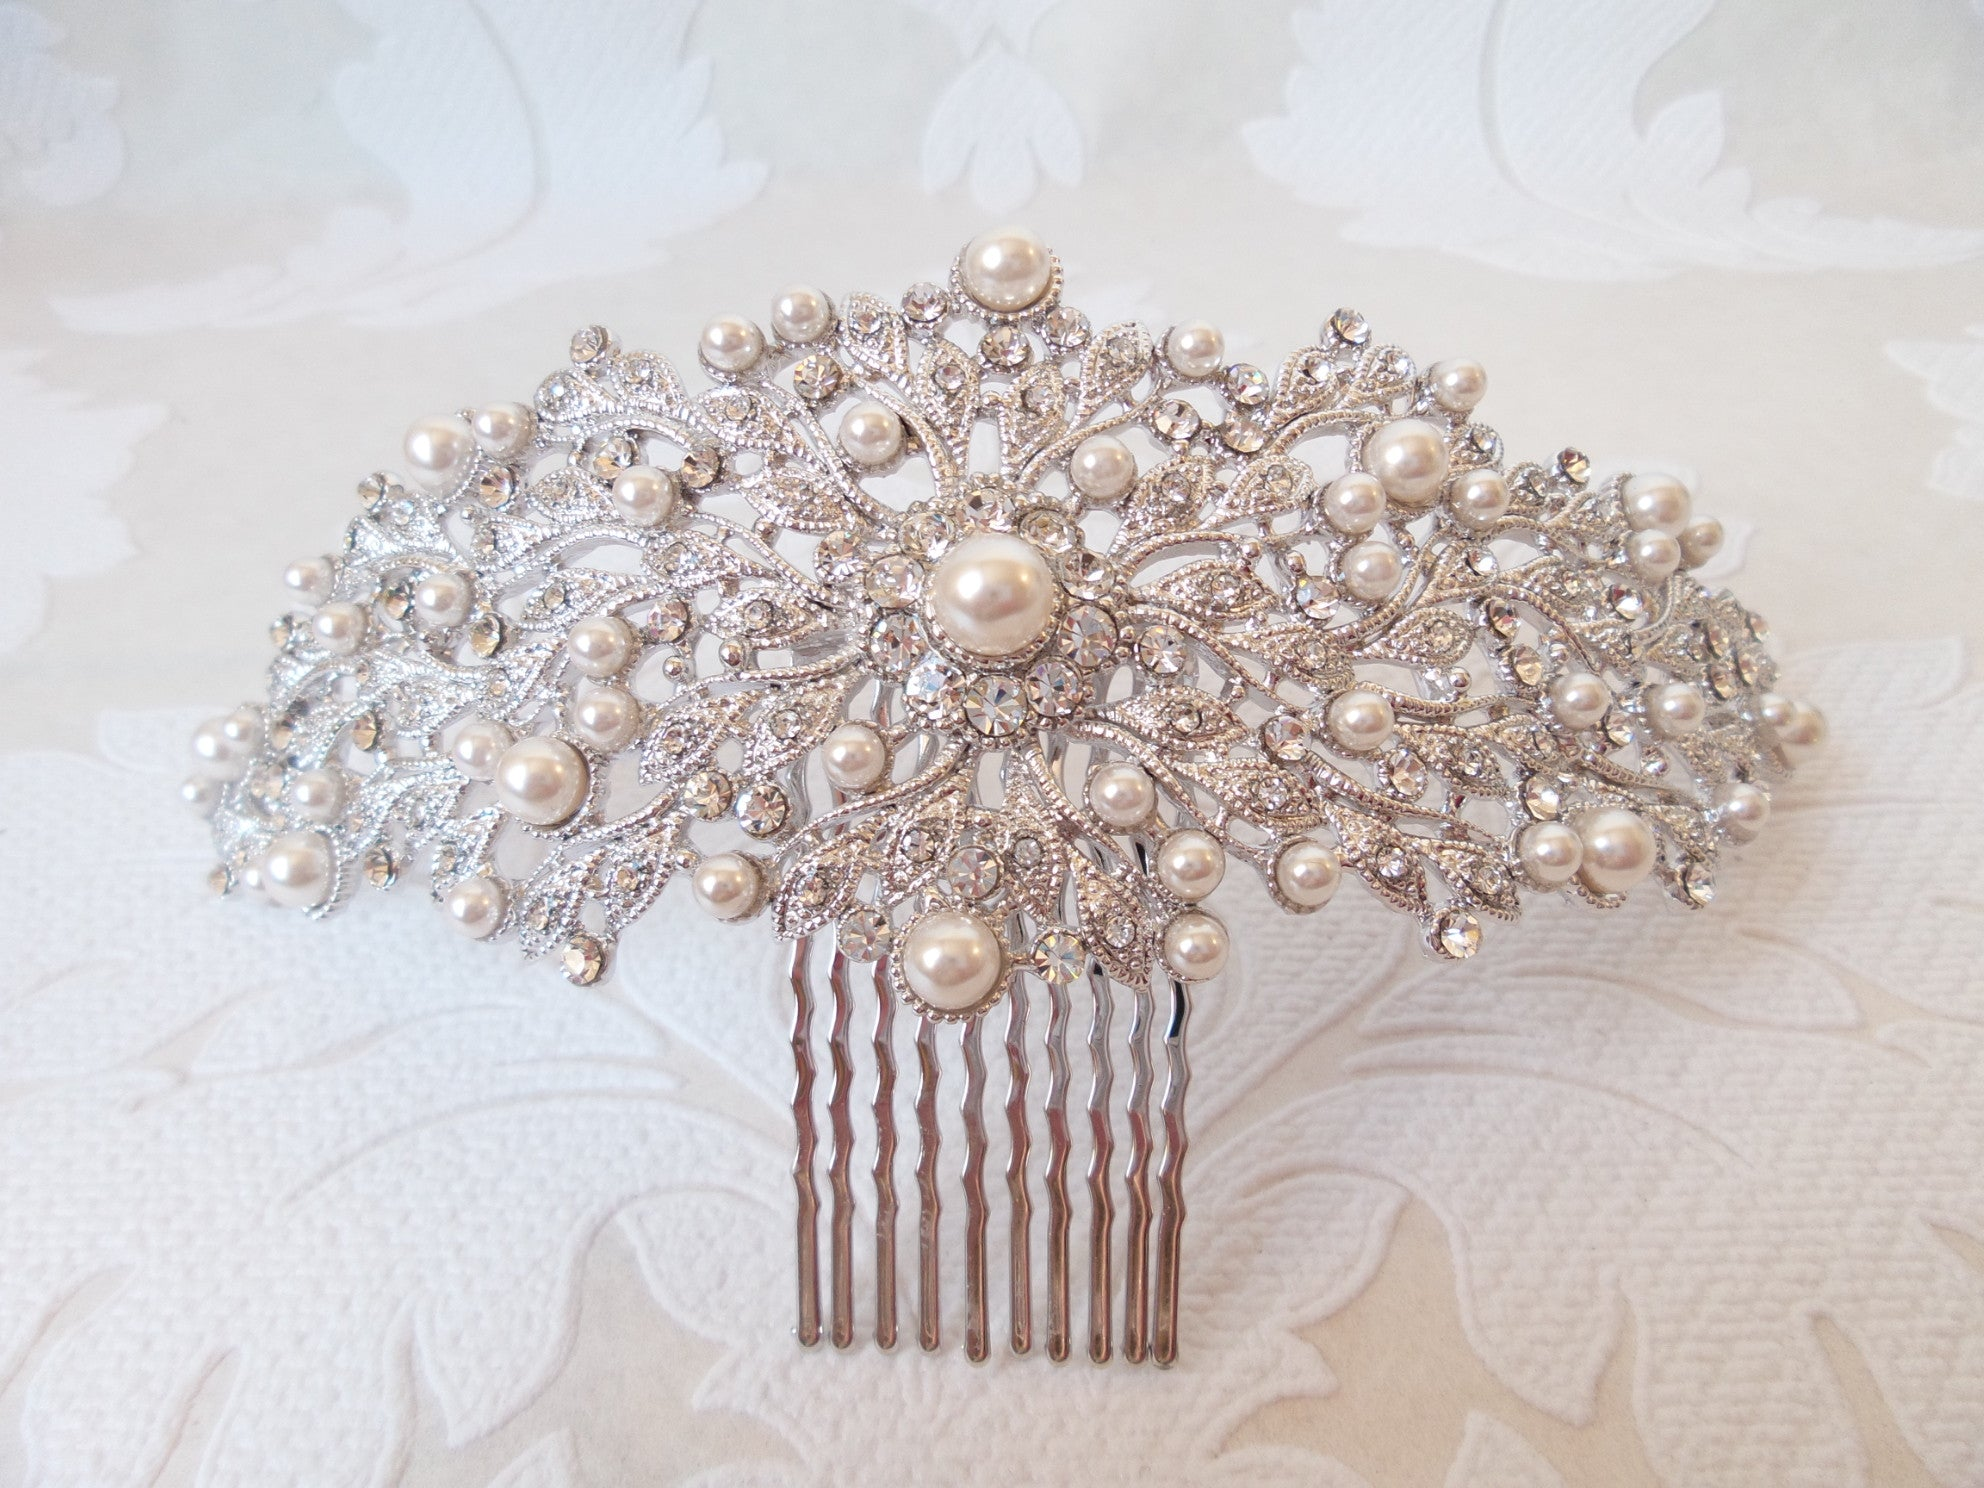 Floral Flair Bridal Hair Comb by SNK with Swarovski Crystal and Swarovski Pearl Headpiece